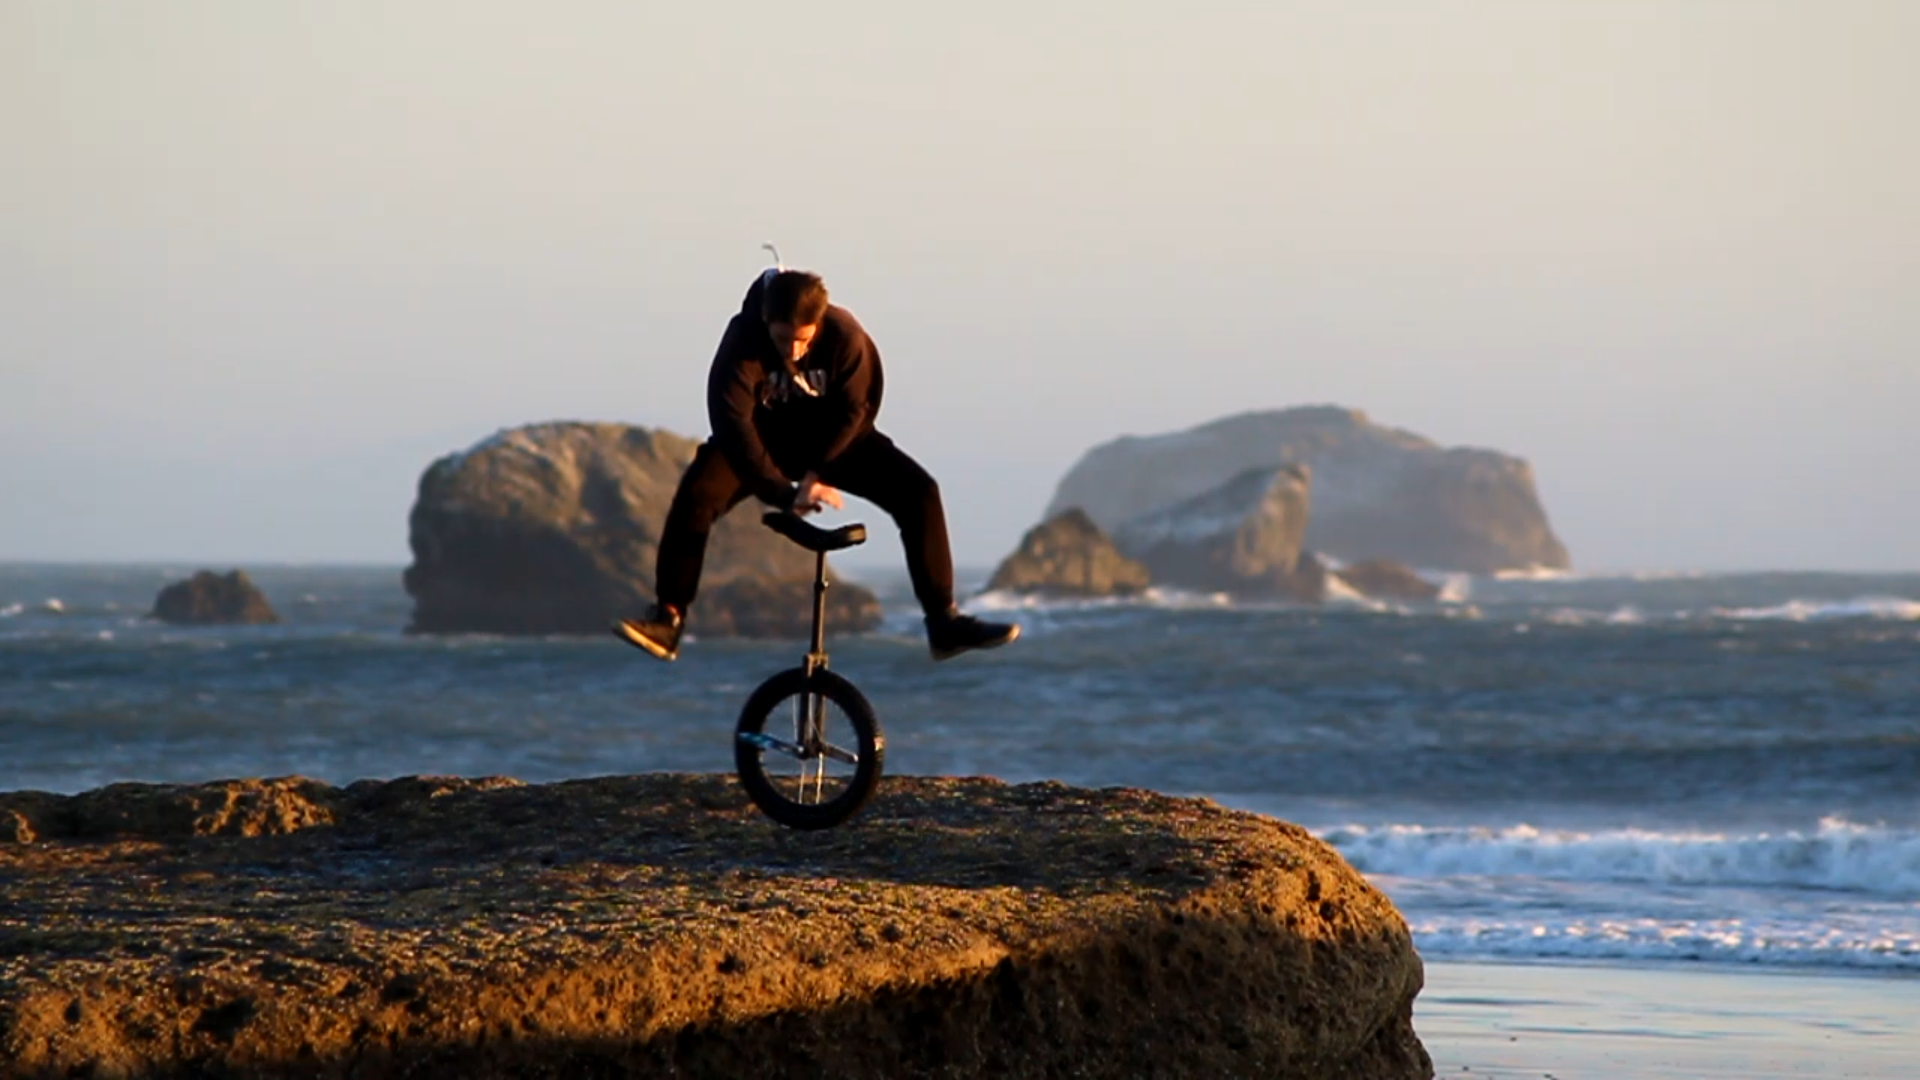 Alex unispinning at the coast of California